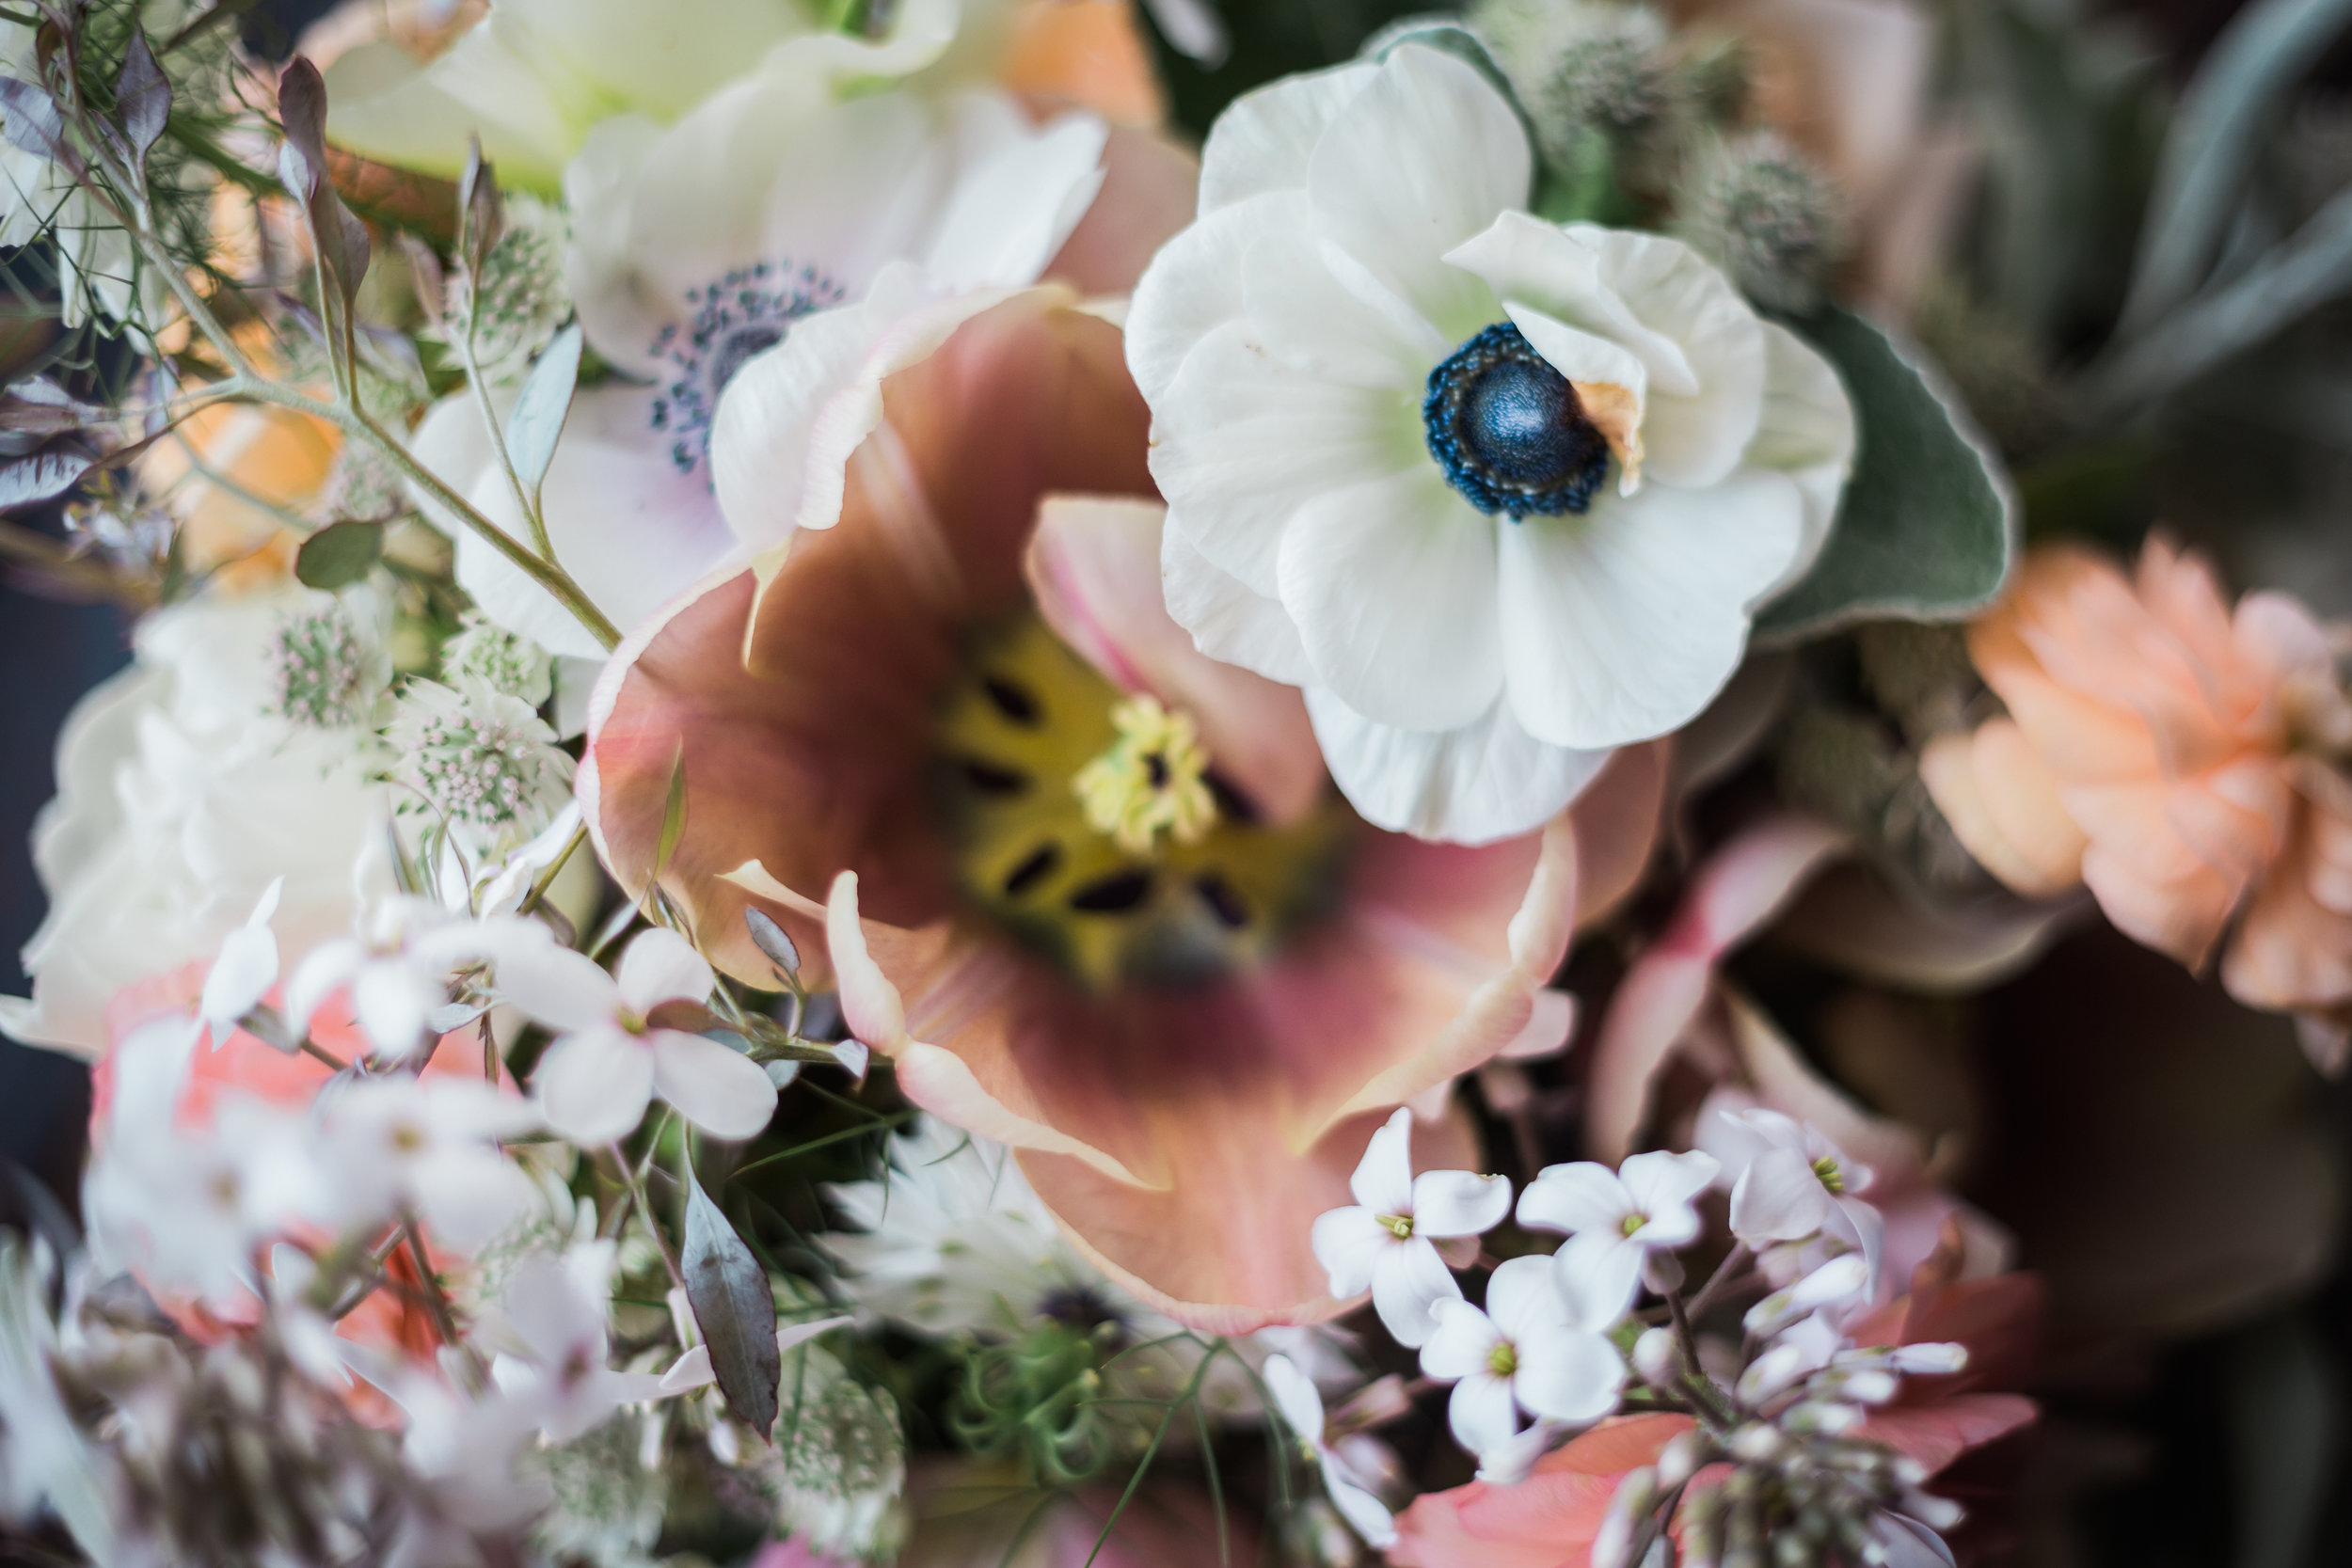 adelaides-secret-garden-wedding-flowers-katheryn-dan